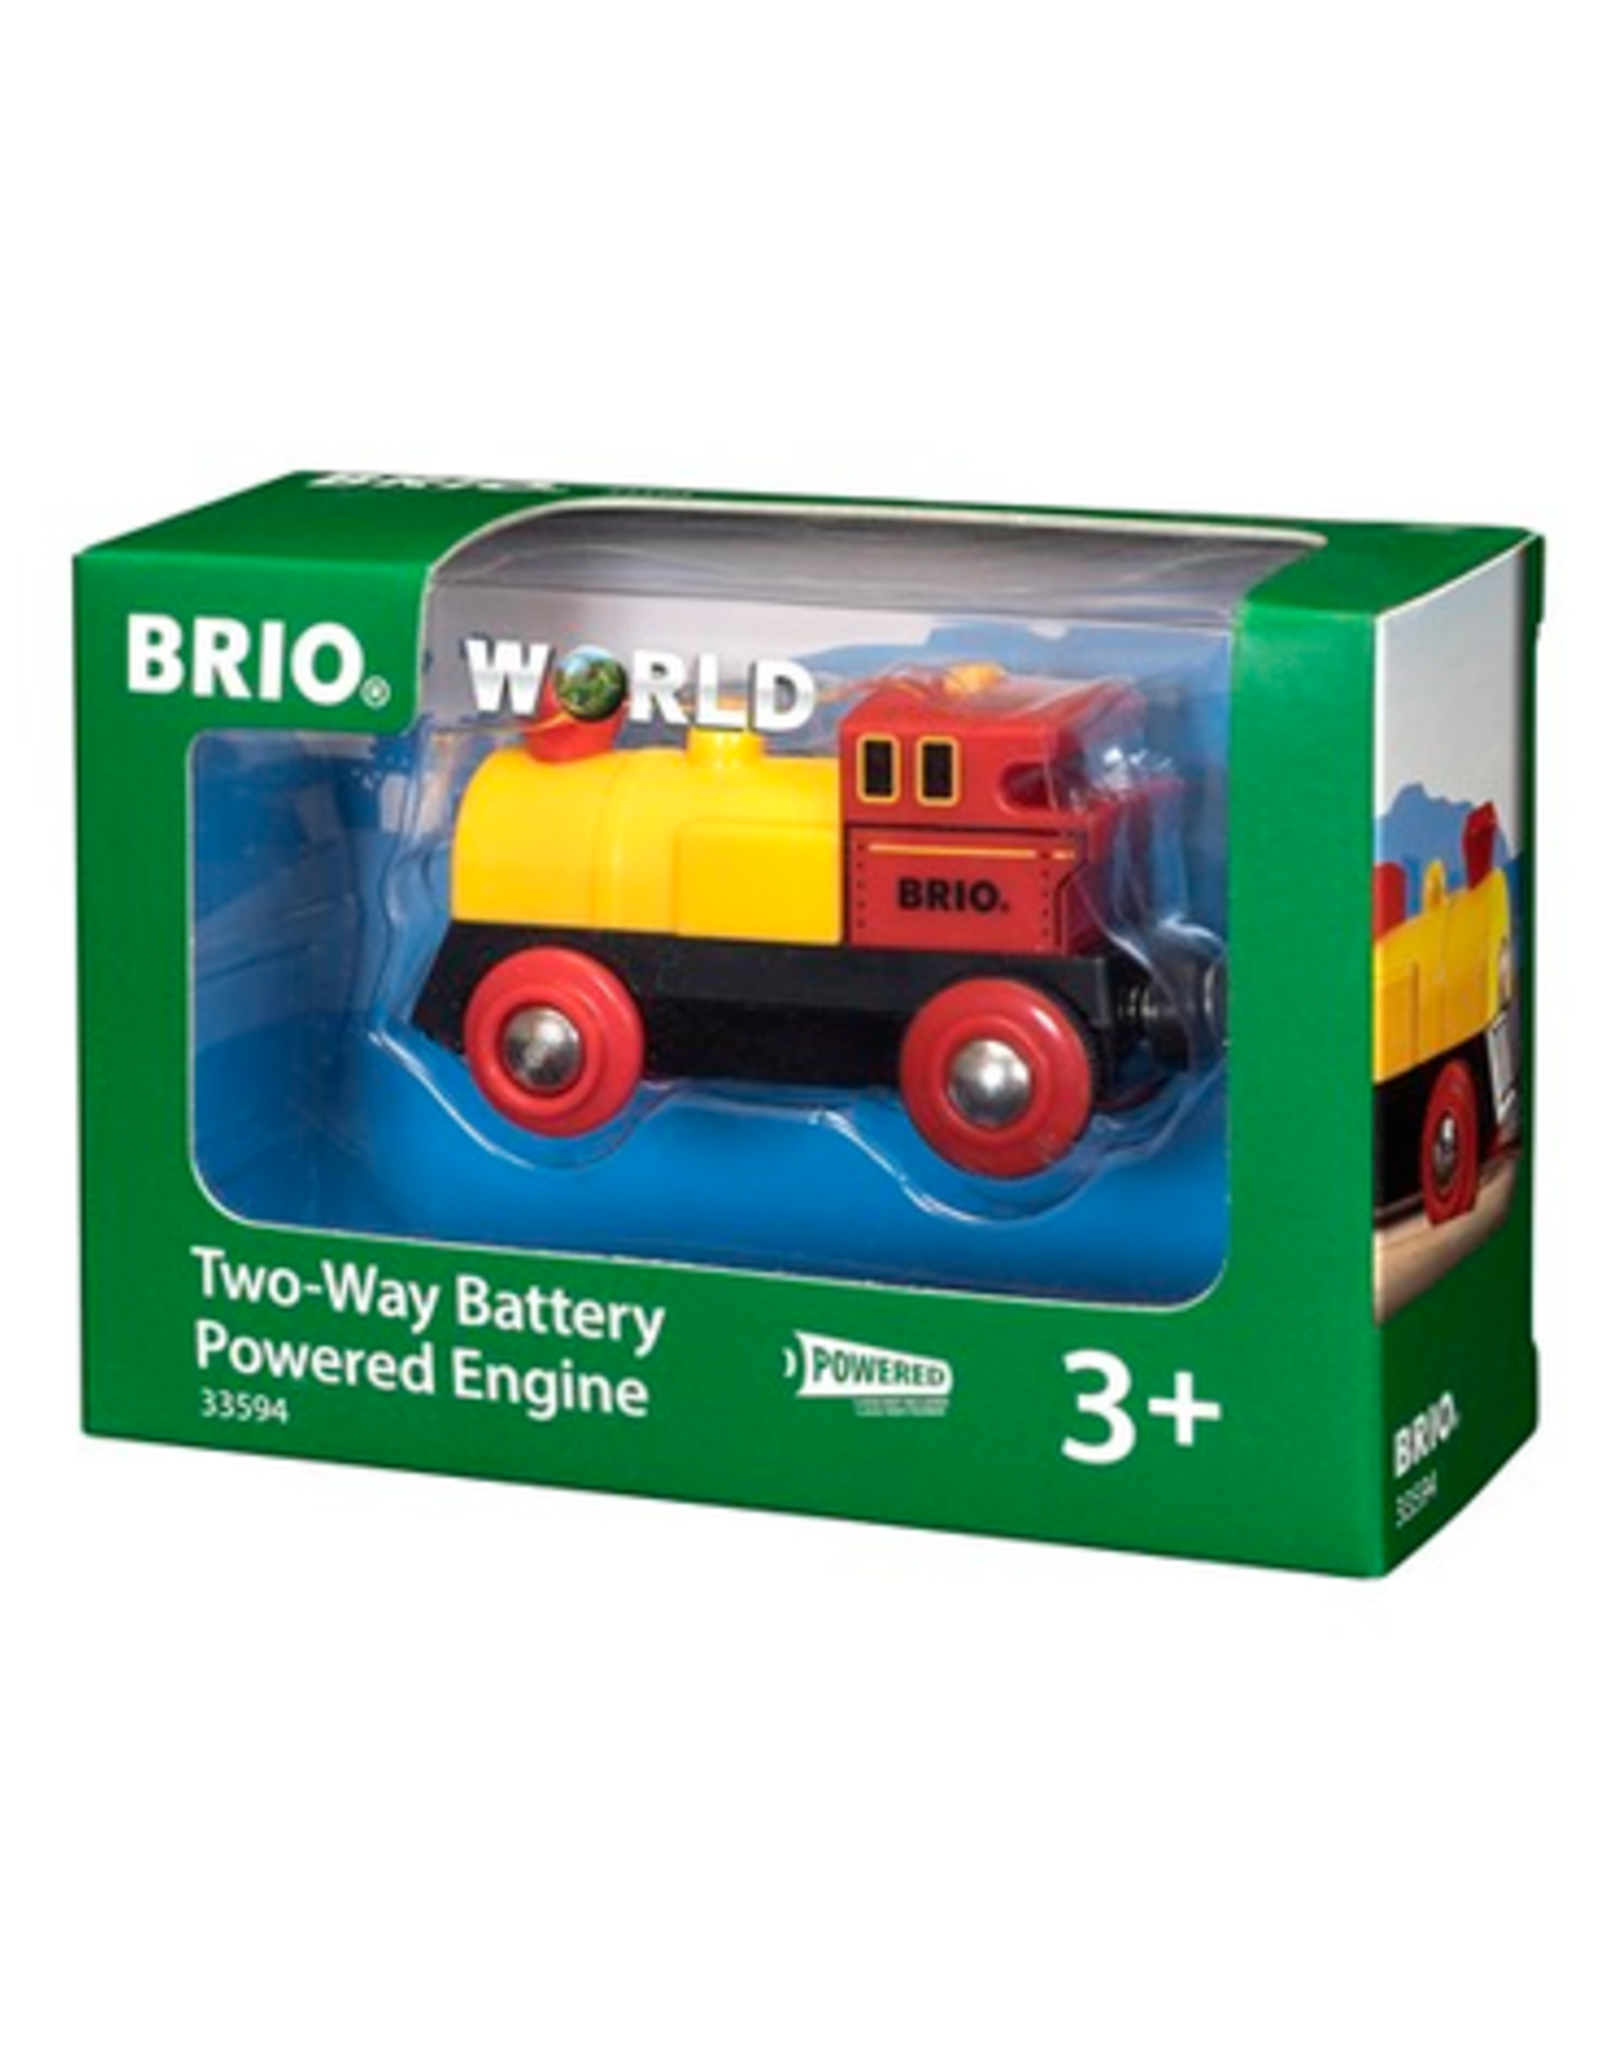 BRIO RAVENSBURGER Two Way Battery Powered Engine